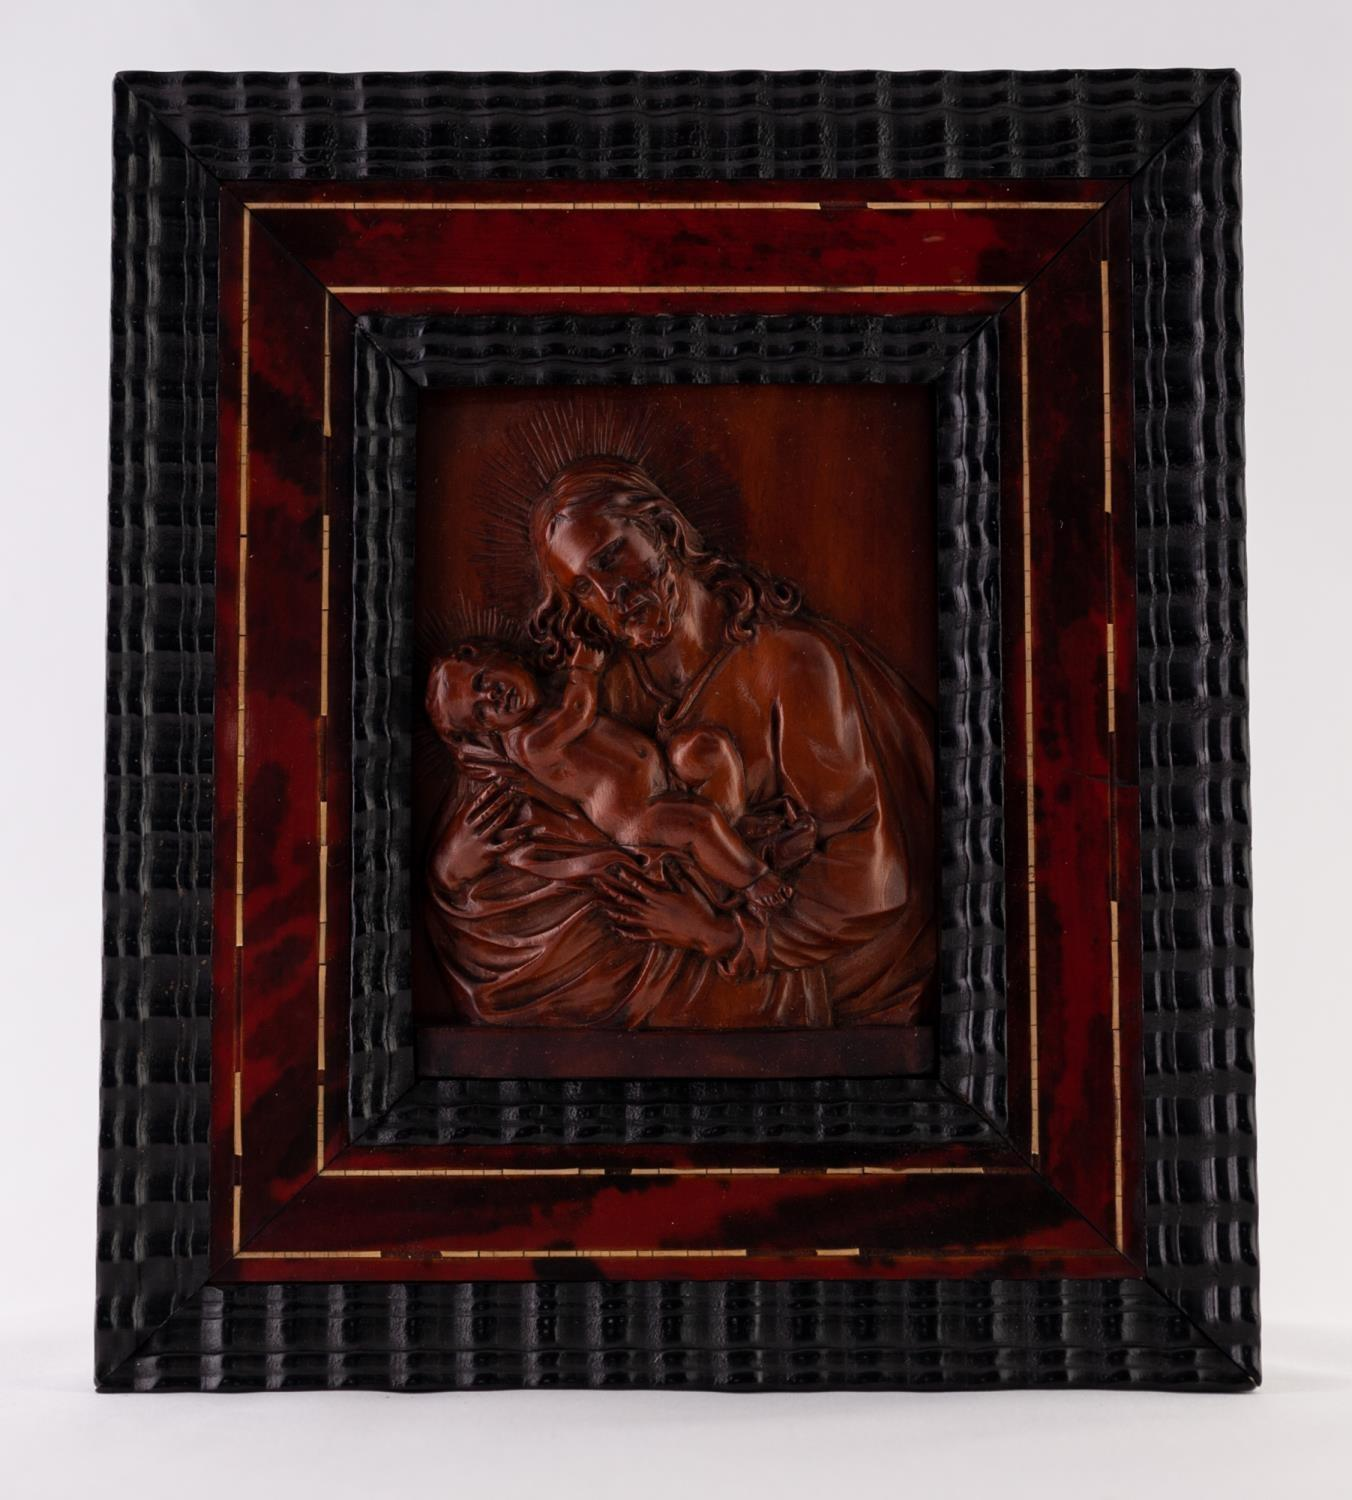 AN 18TH CENTURY FLEMISH CARVED FRUITWOOD RELIEF OF JOSEPH CRADLING THE CHRIST CHILD, contained